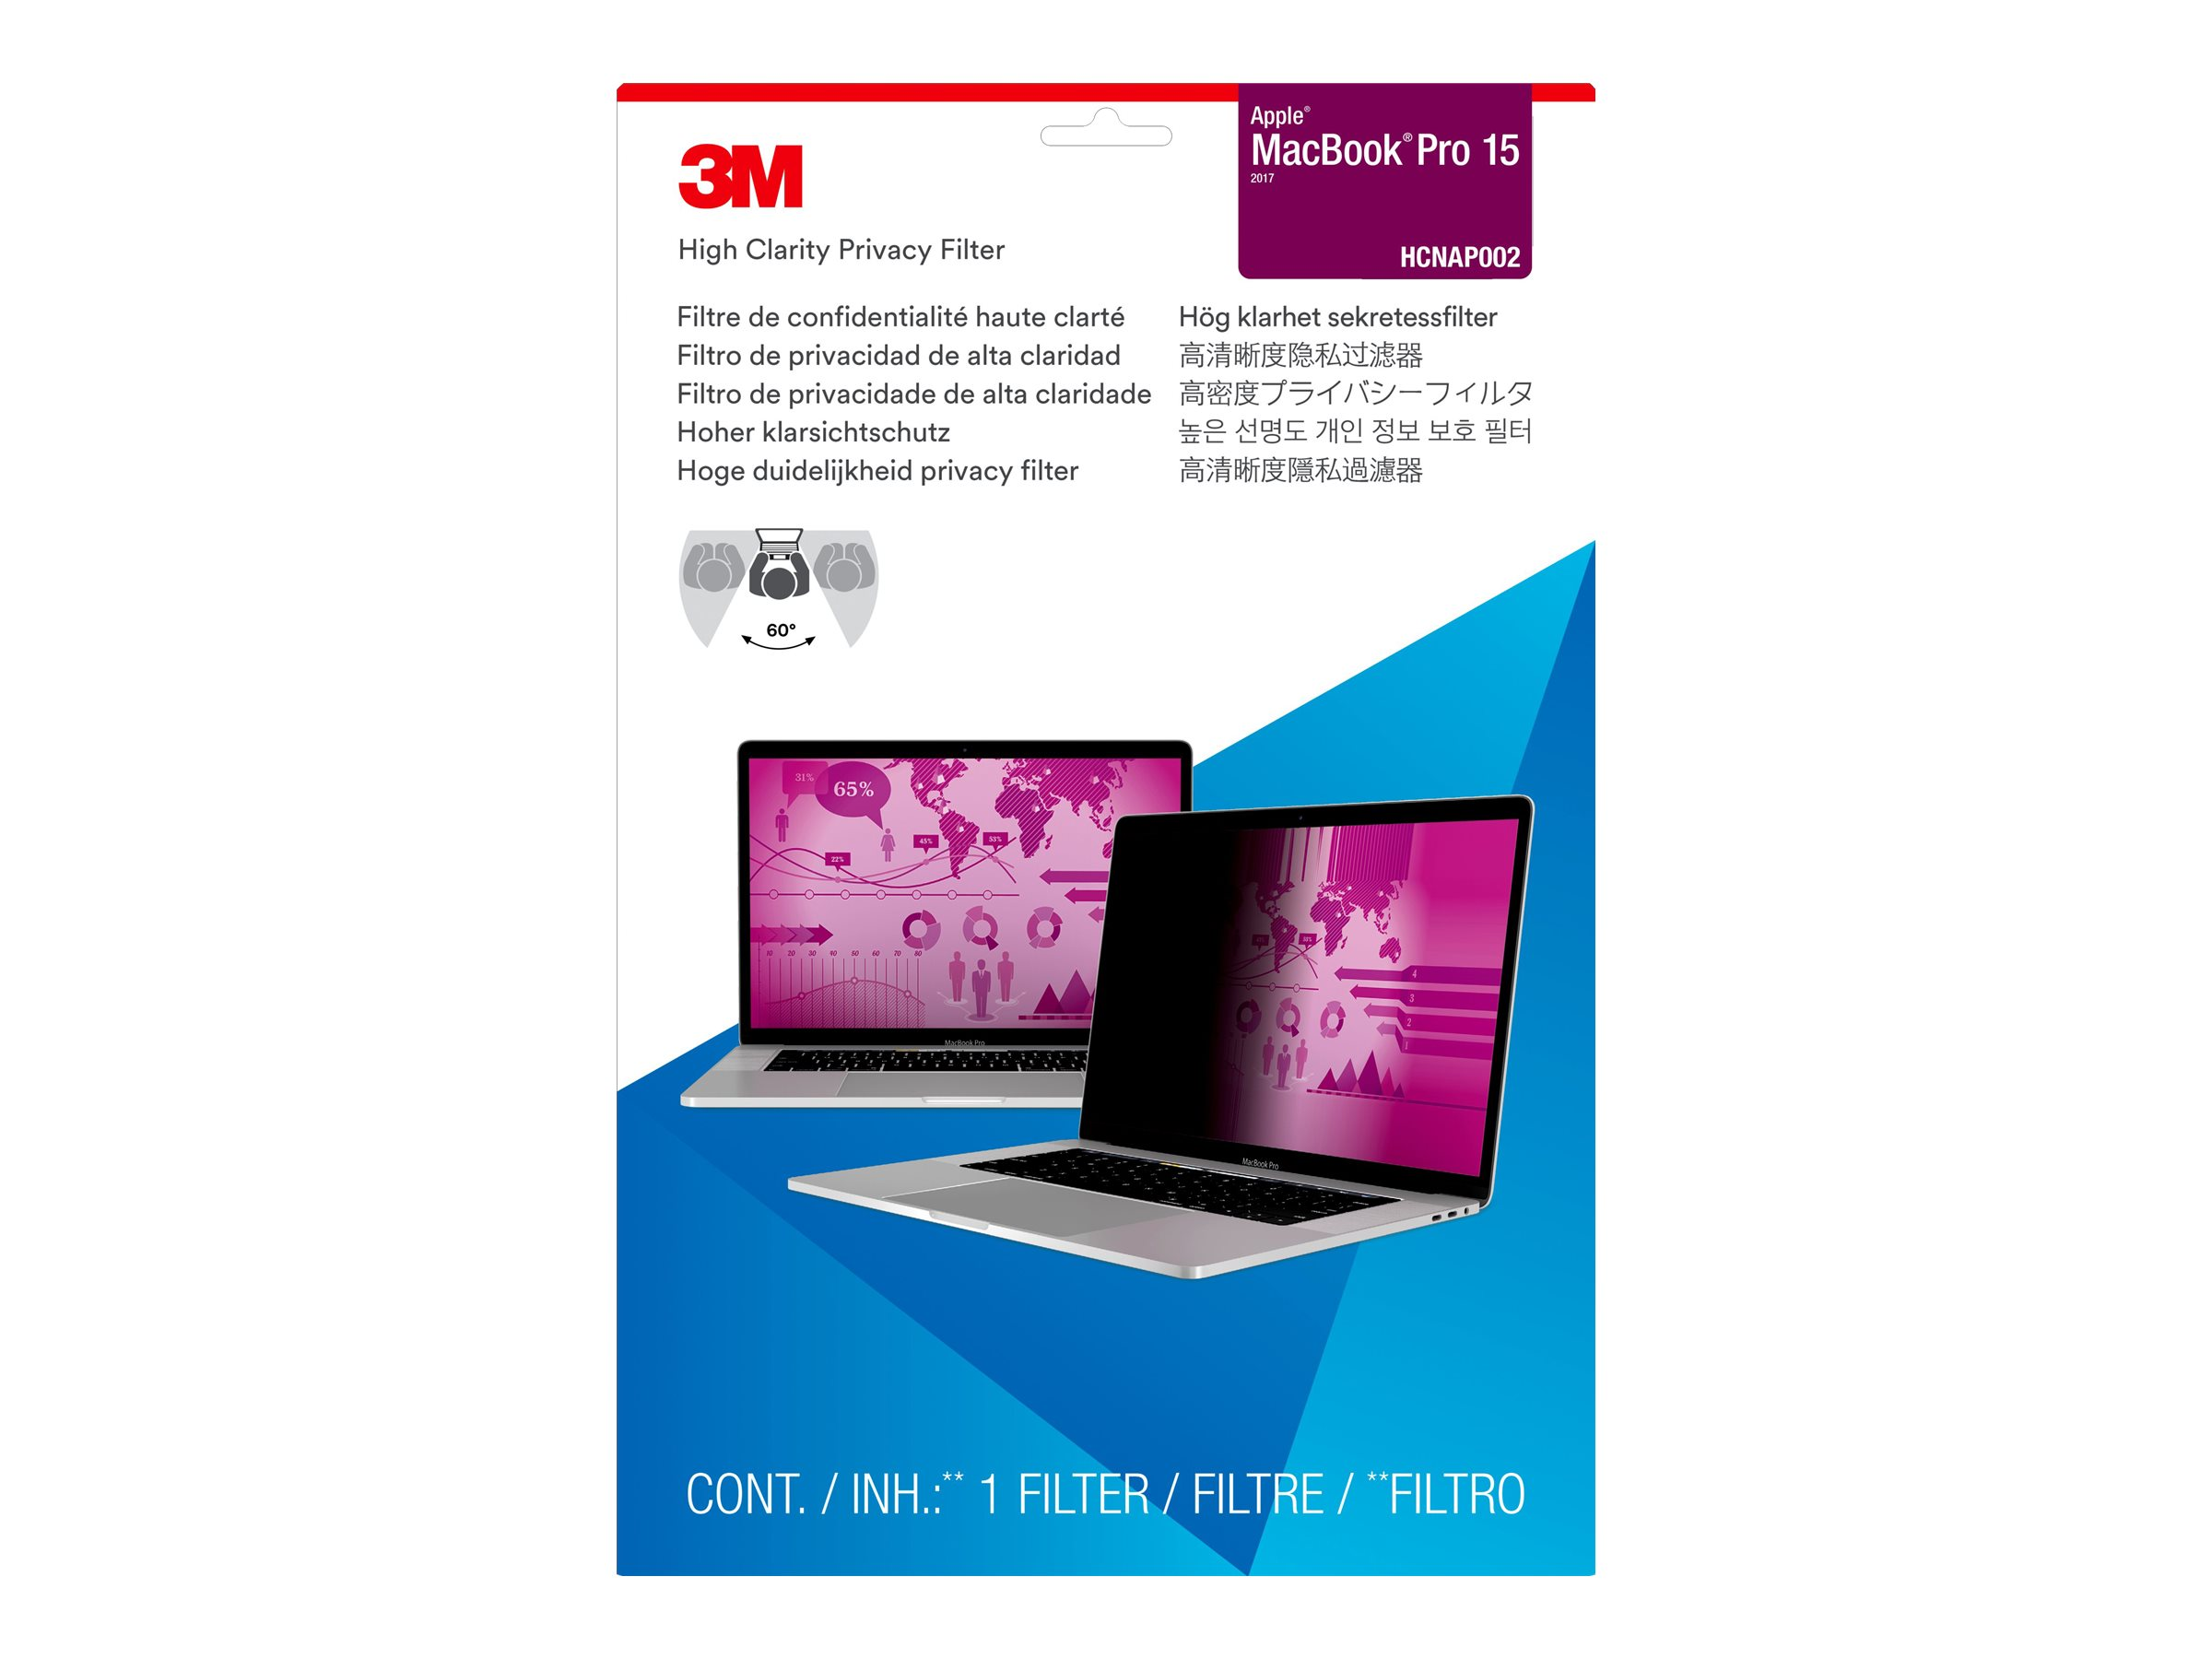 3M High Clarity Privacy Filter for Apple MacBook Pro 15